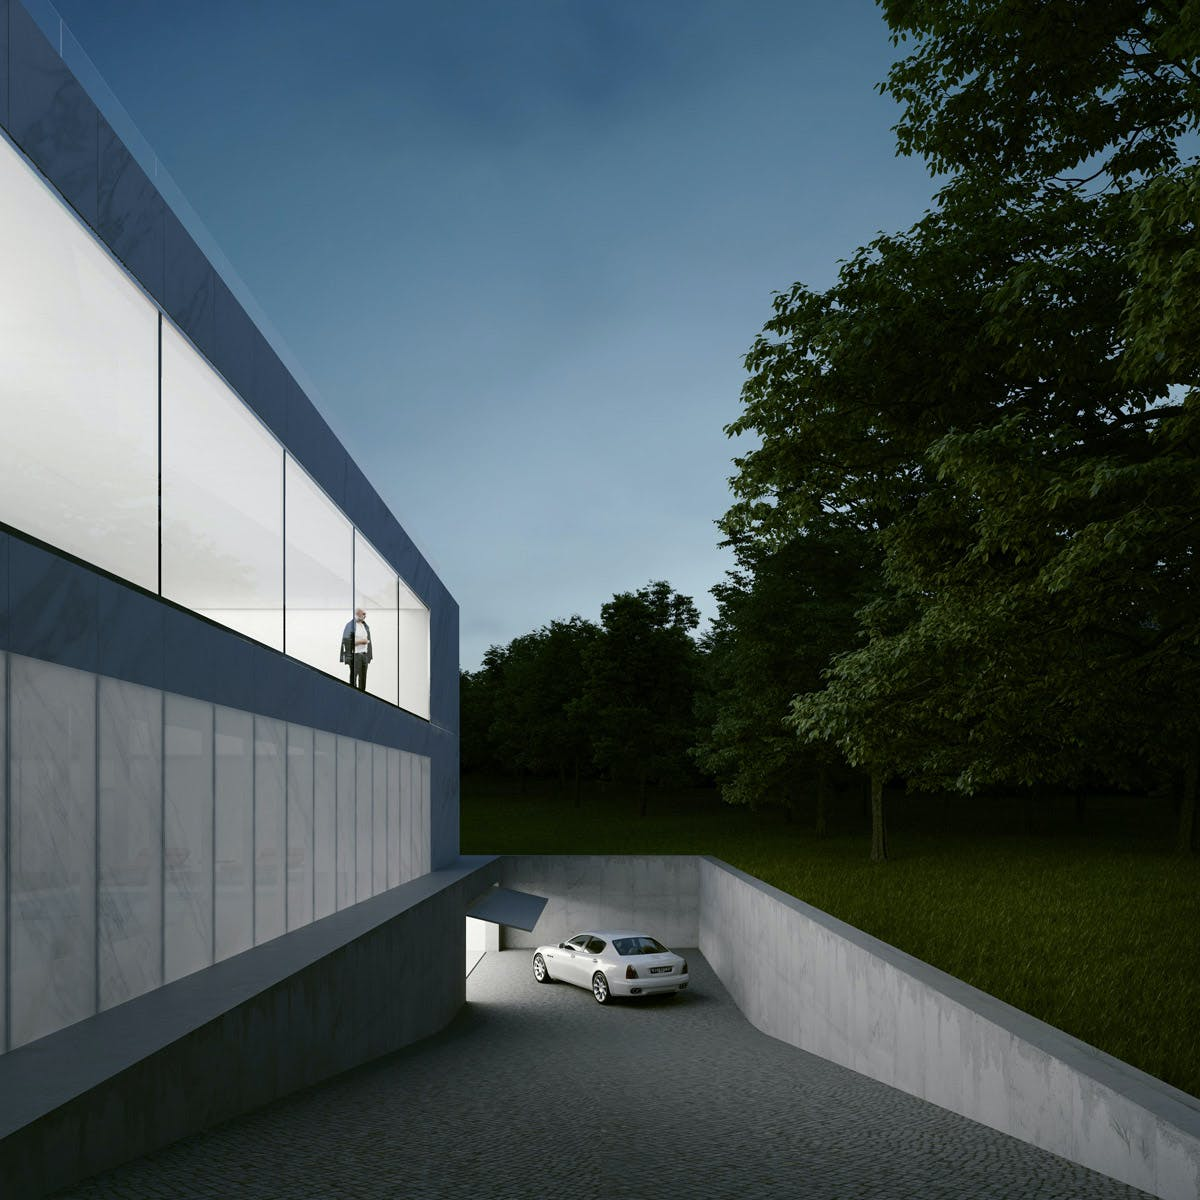 Entrance To The Garage